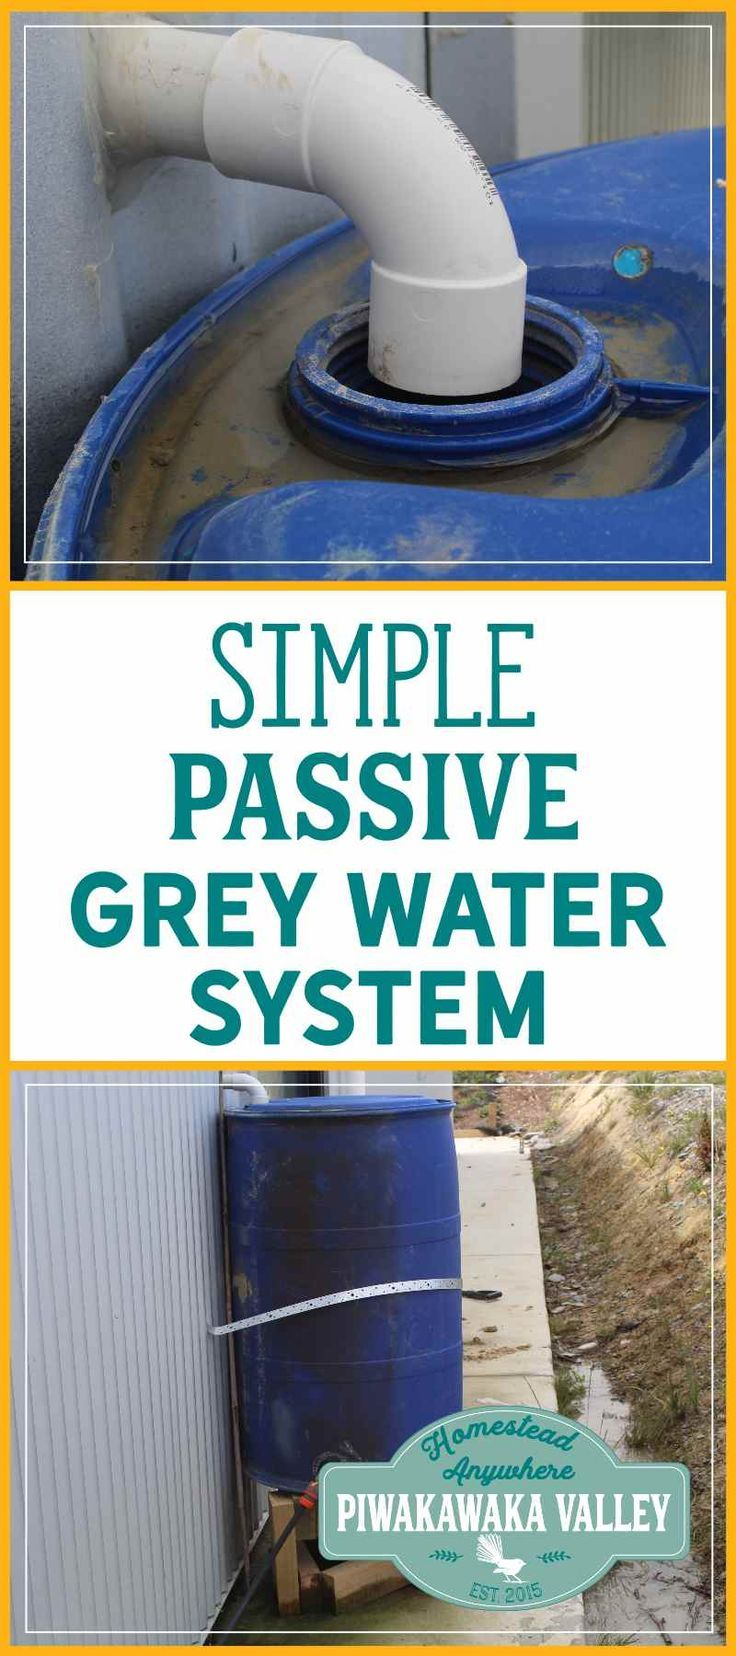 We have set up this passive grey water recycling system that feeds my plants while I am busy doing other things. DIY, do it yourself, make your own, recycle, upcycle, Self sufficient, Crop production and management, Small farm, Hobby farms, Self sufficient homestead, How to start small garden, Homestead living, modern homesteading,  DIY projects, DIY instructions, #selfsufficiency #blacksmith #diyproject #diyoutdoorprojects